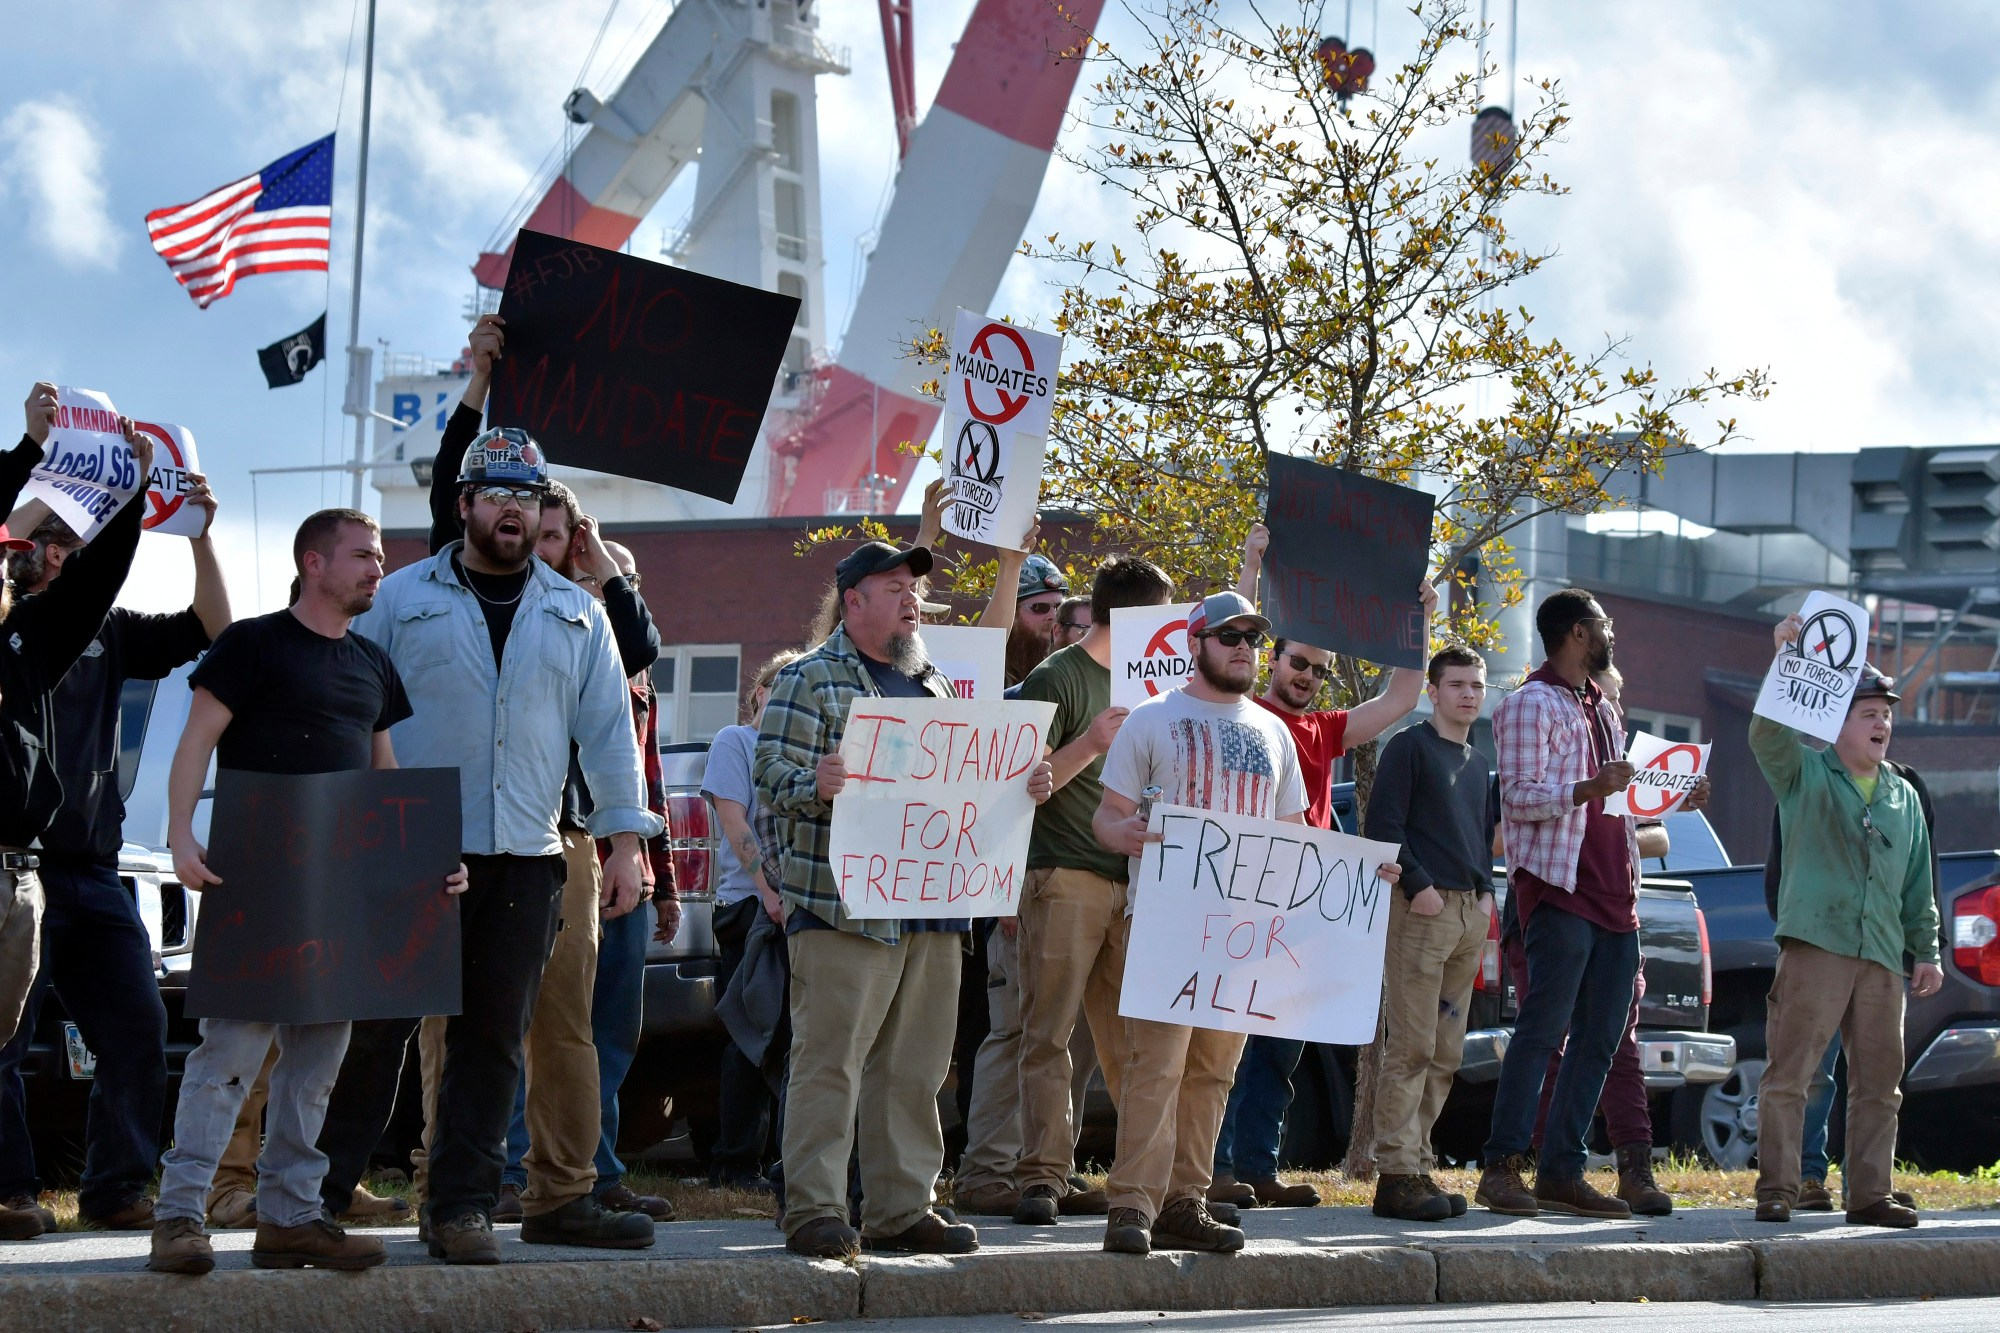 Employees at Bath Iron Works demonstrate against COVID-19 vaccine mandate outside the shipyard on Friday, Oct. 22, 2021, in Bath, Maine. (AP Photo/Josh Reynolds)